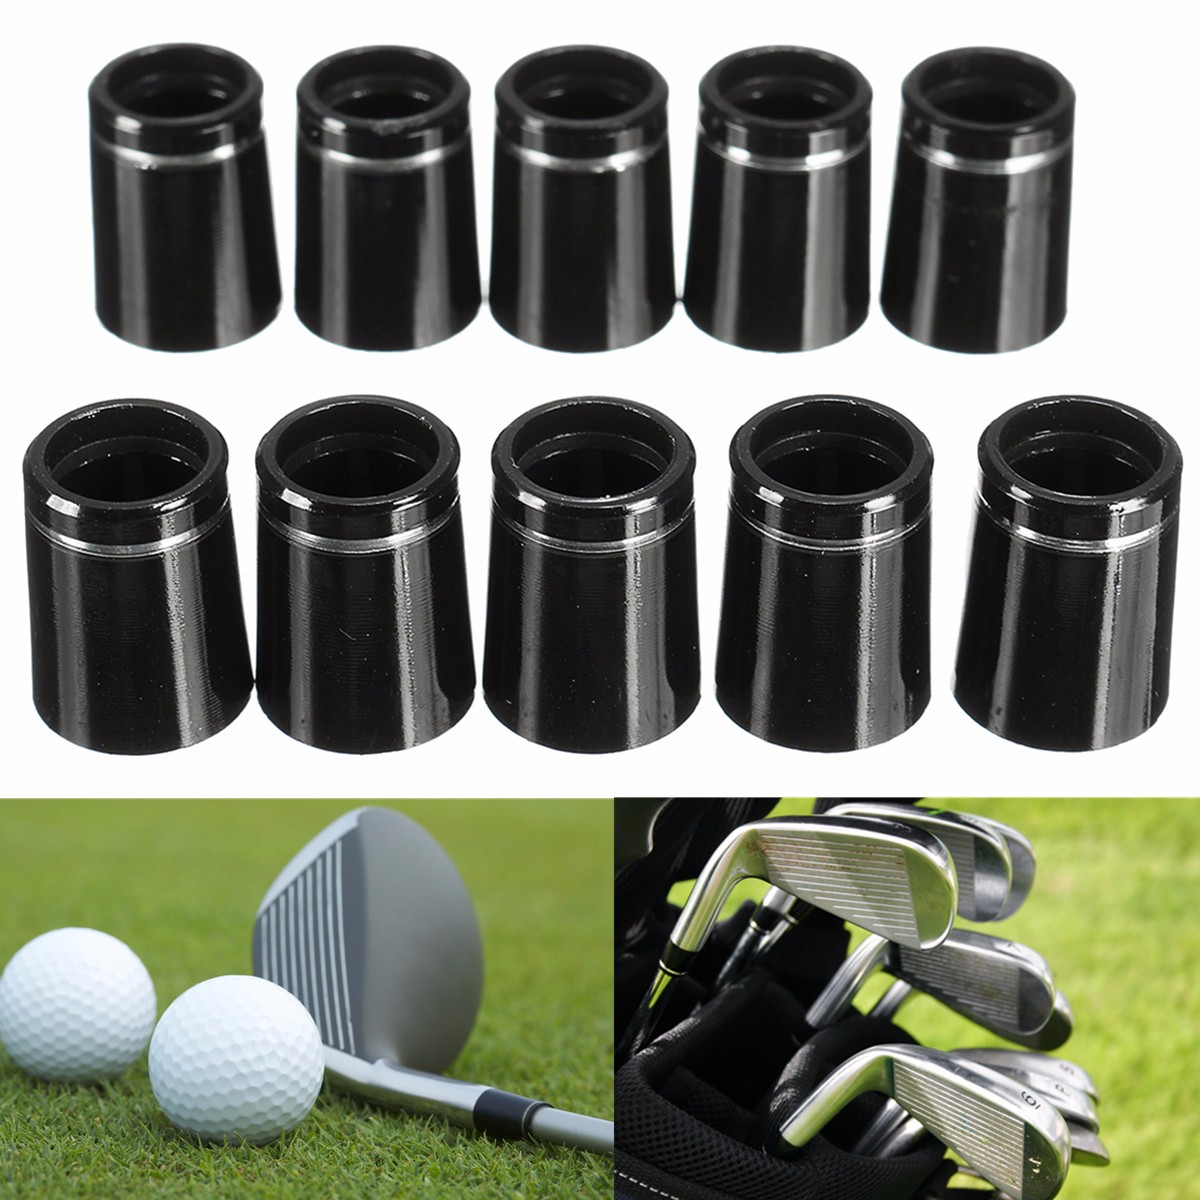 10x Golf Taper Tip Ferrules Adapter With Single Silver Ring For 0.335 Iron Shaft  For 0.335 Tip Irons PP Black